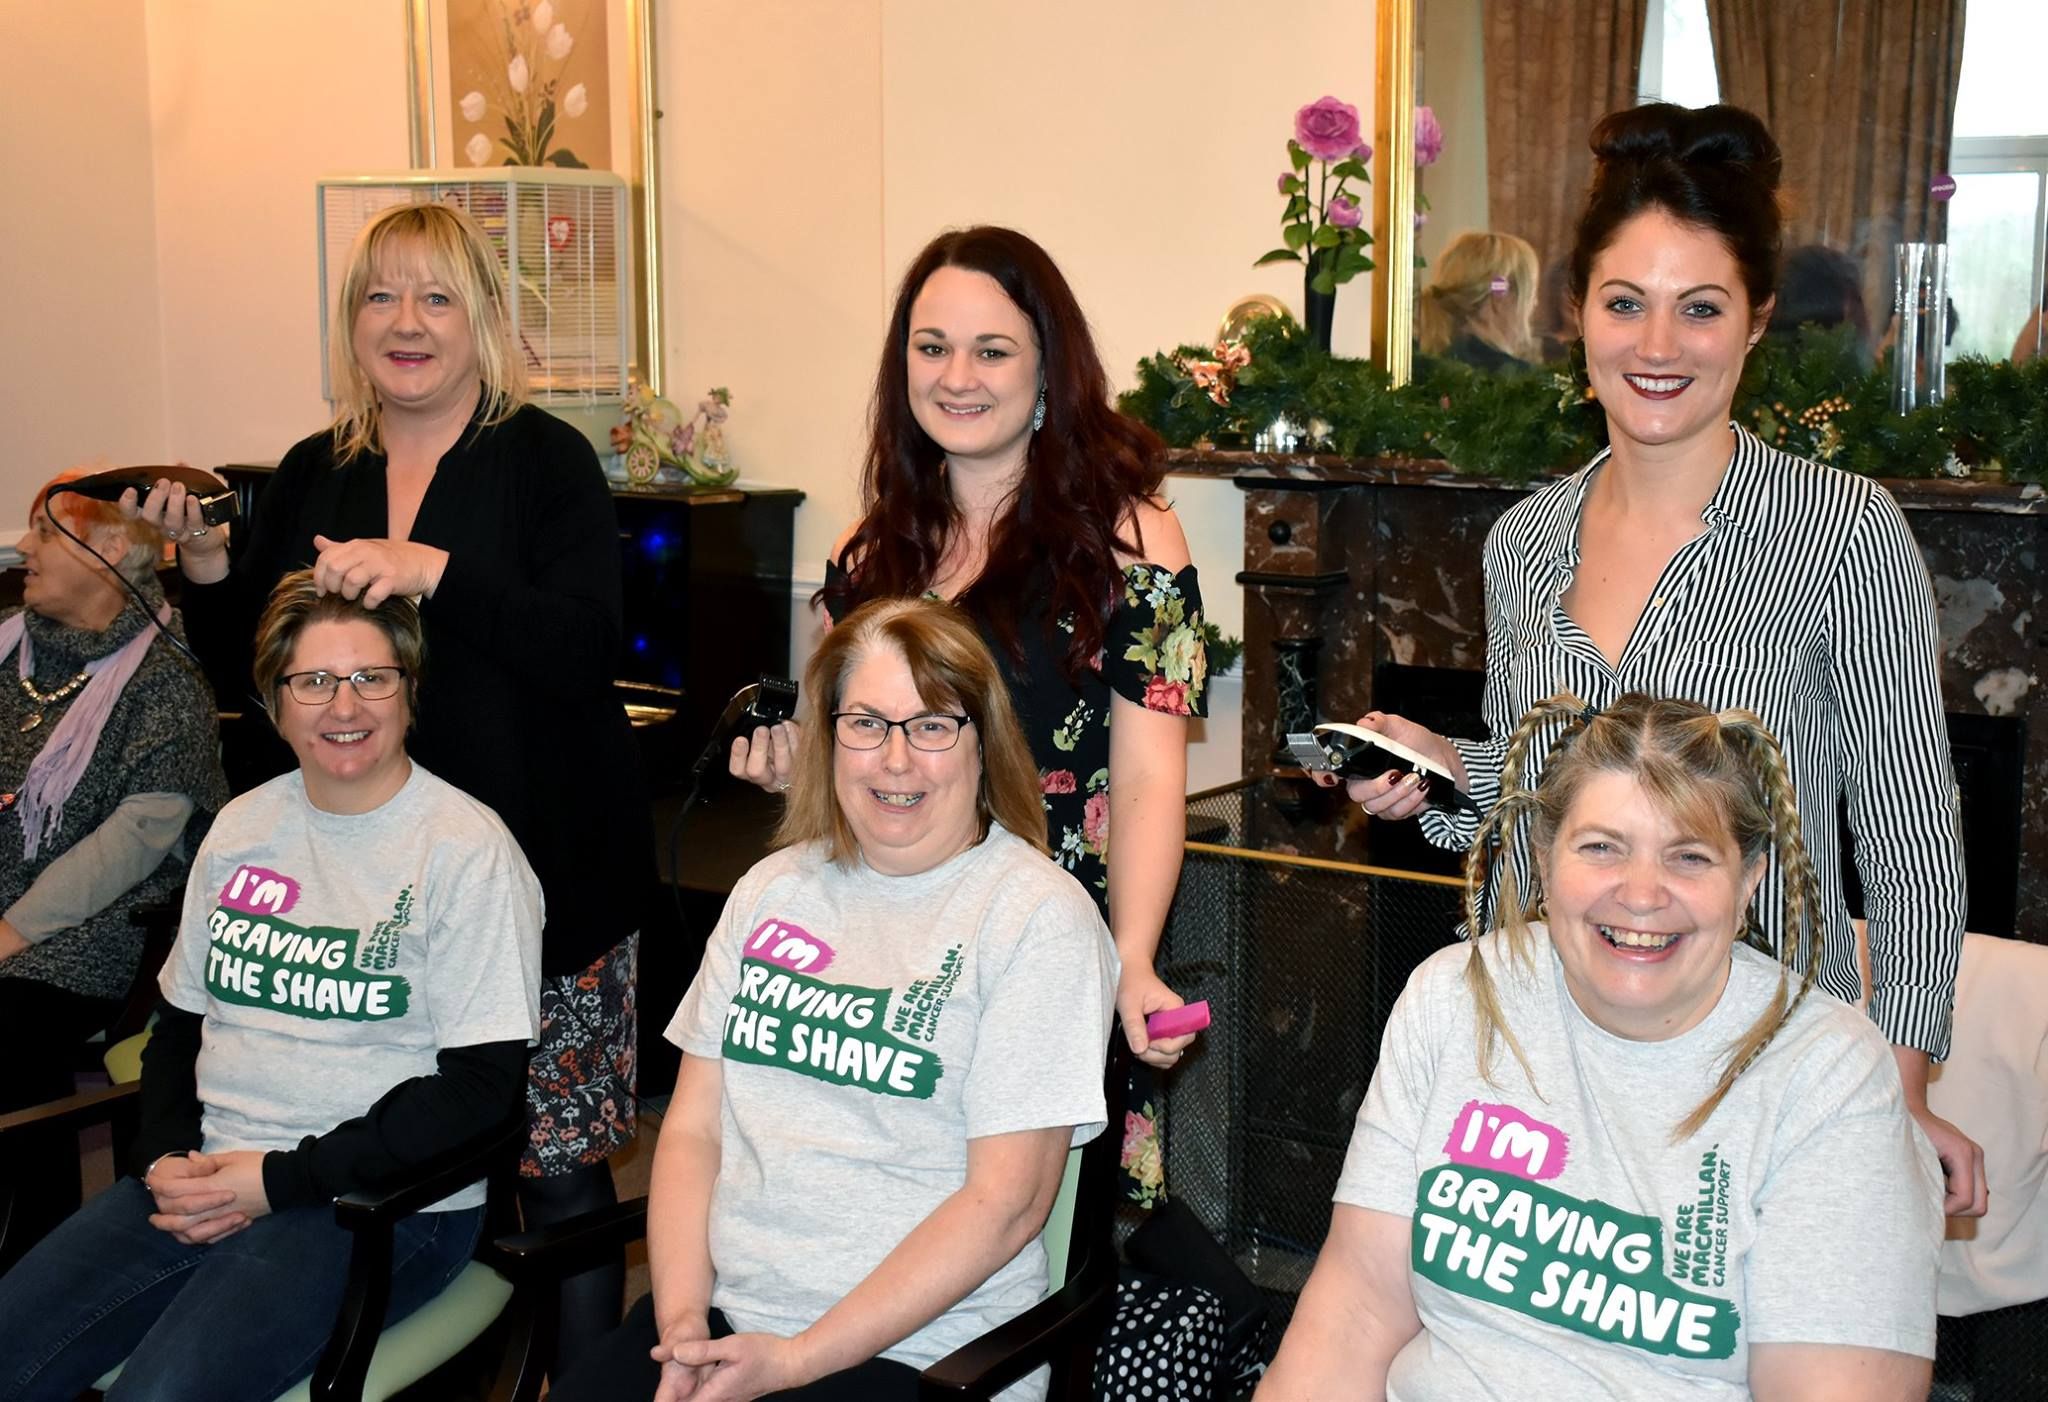 Colleagues braved the shave to raise money for Macmillan Cancer Support